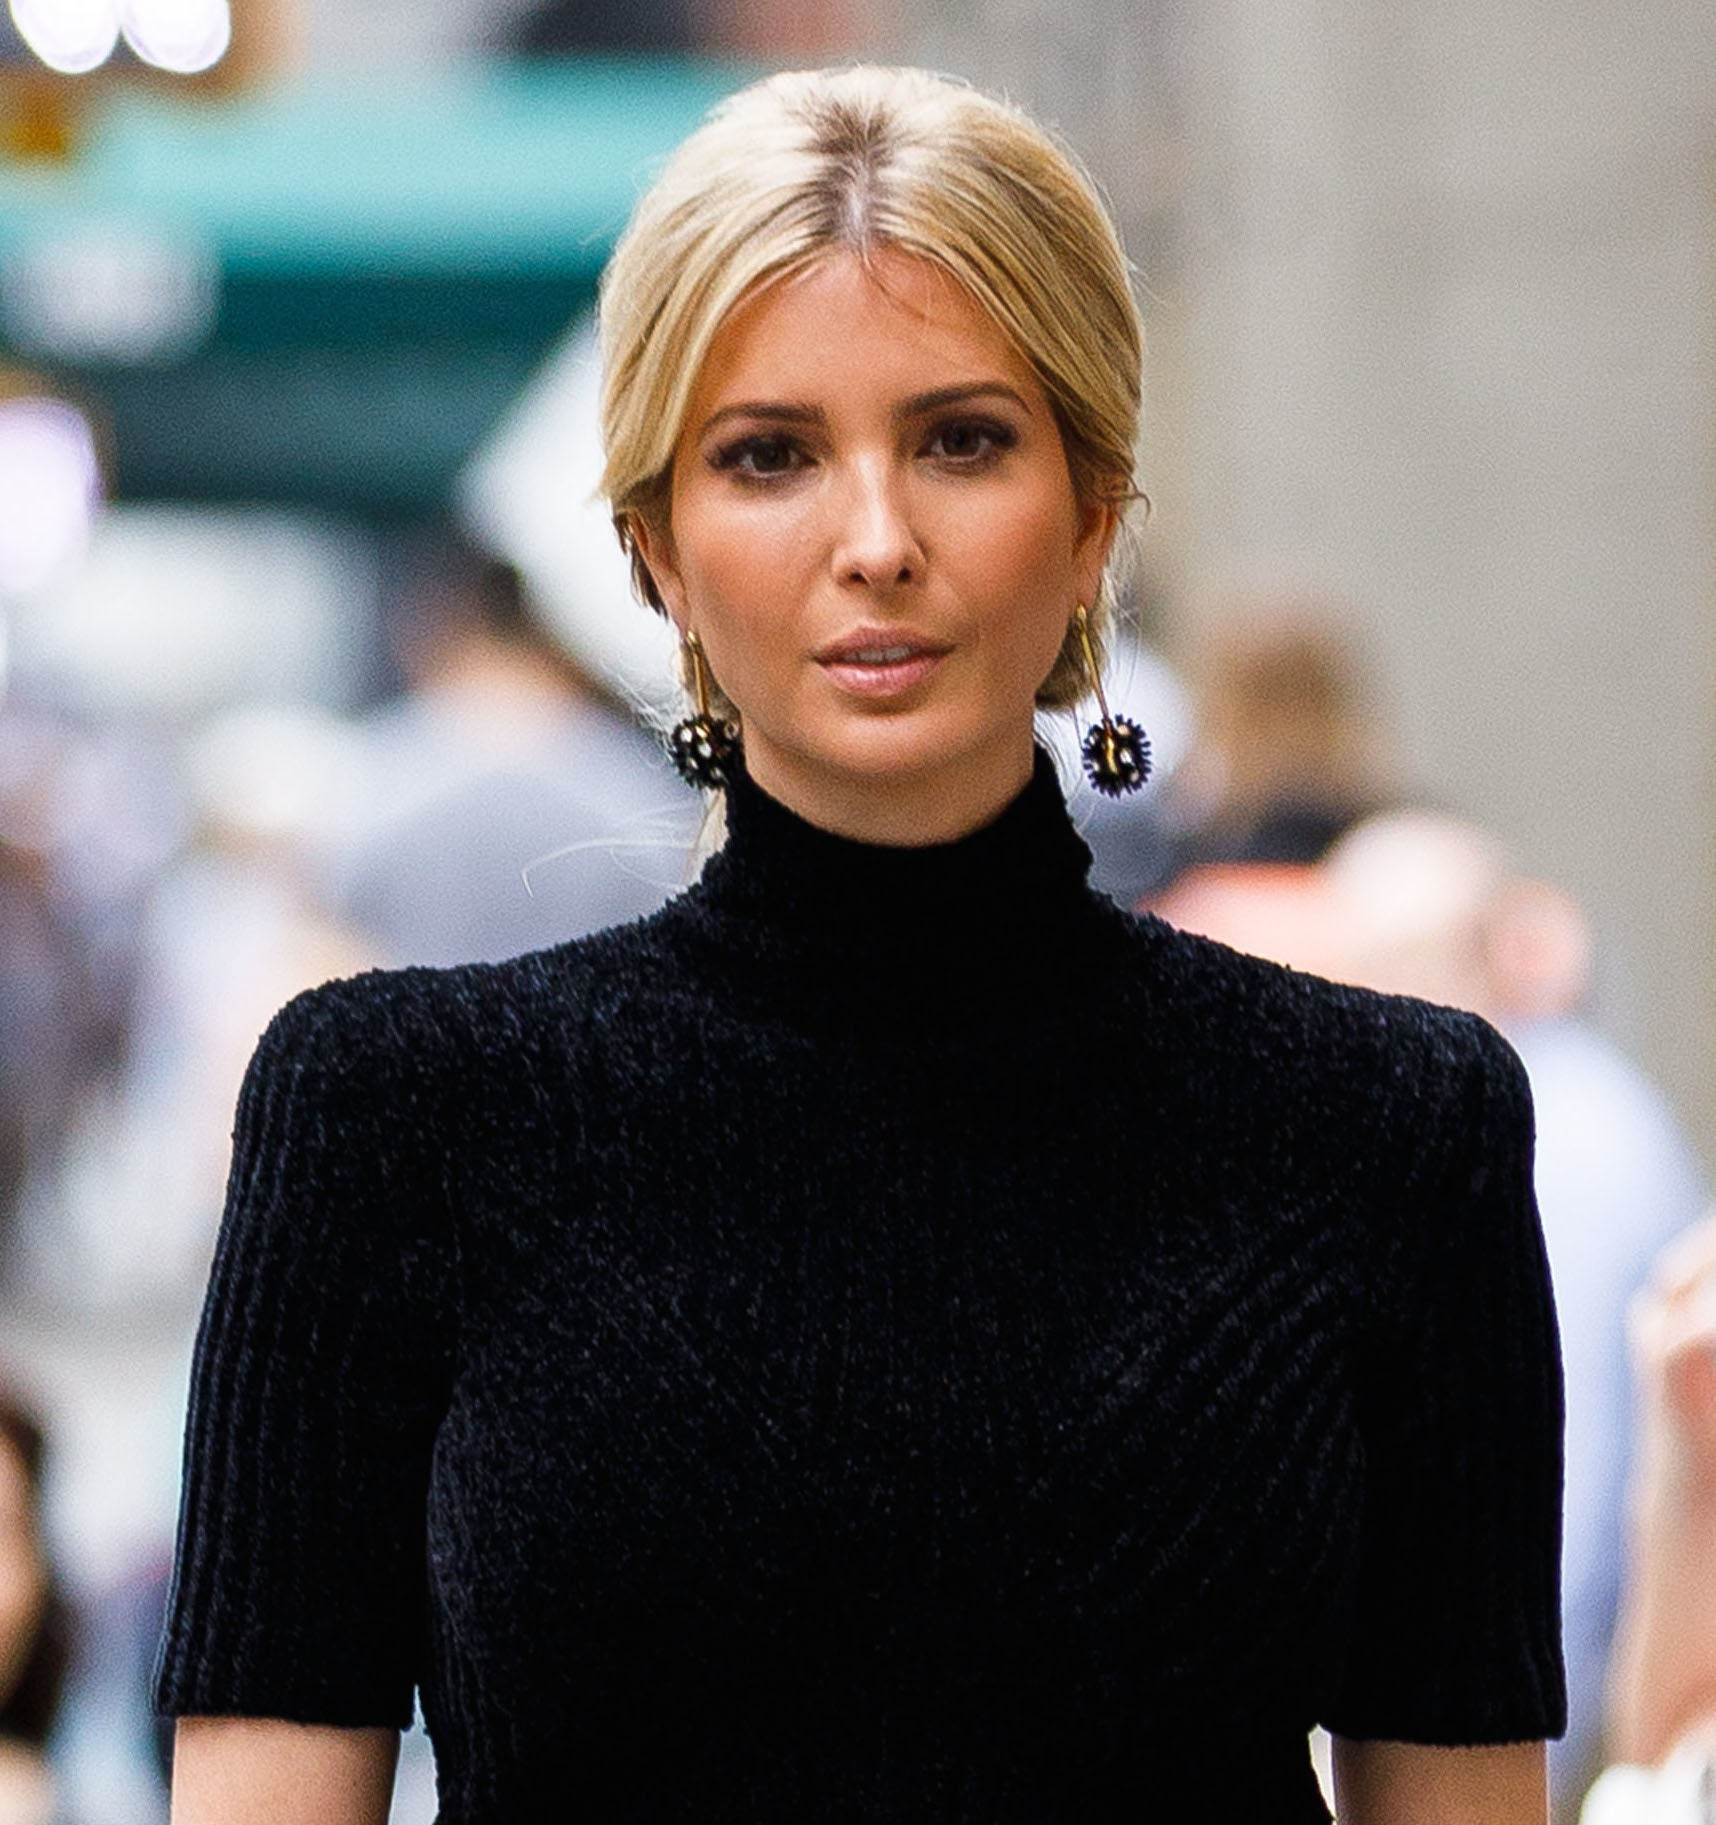 Ivanka Trump Wallpapers HD